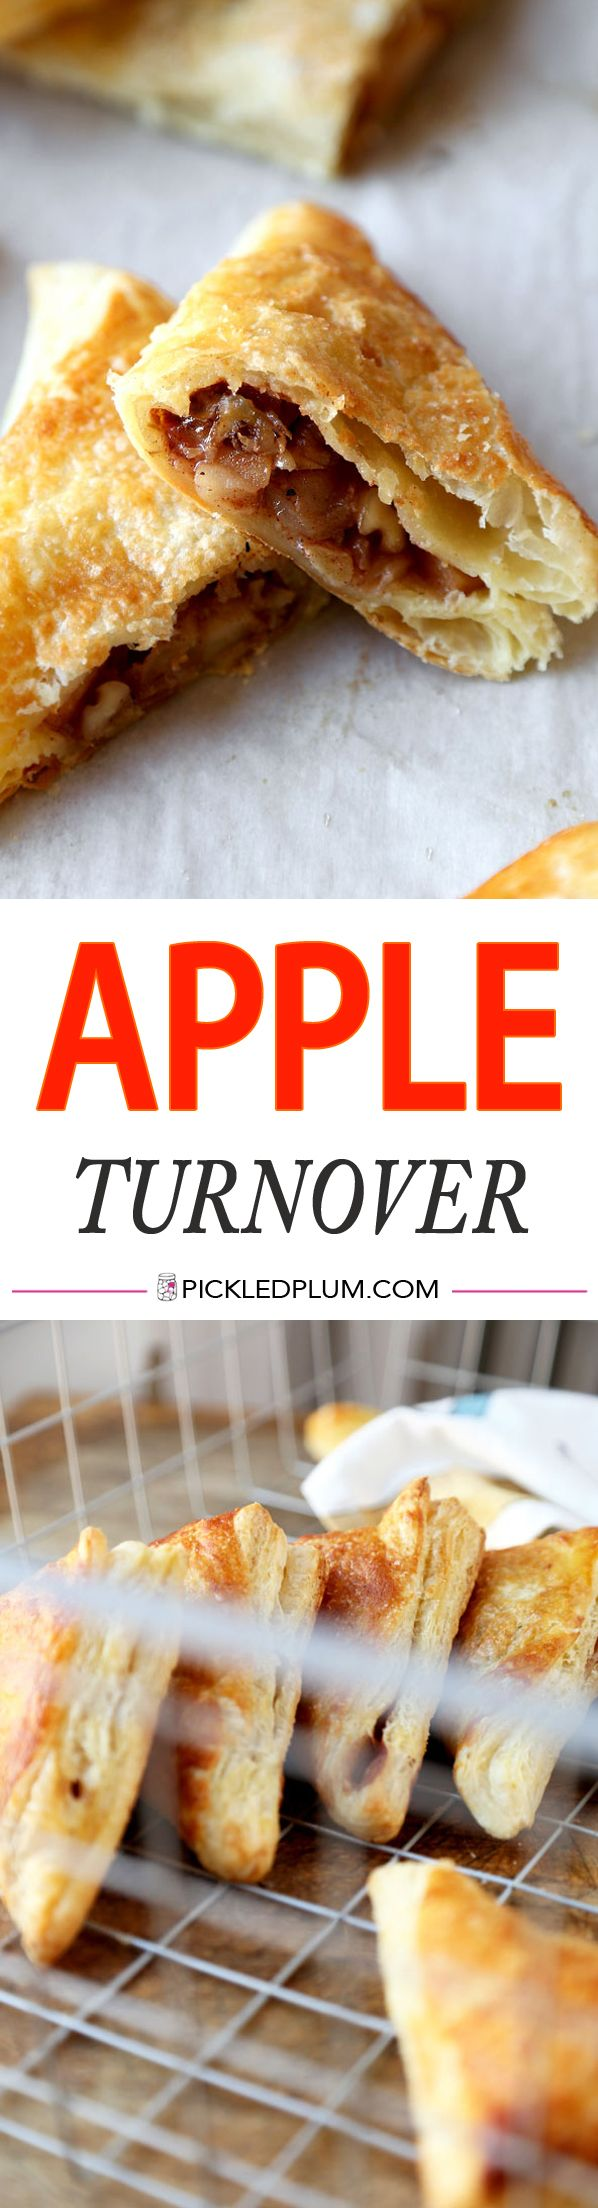 Best Apple Turnover Recipe - sweet and tangy dessert - ready in 40 minutes! http://www.pickledplum.com/best-apple-turnover-recipe/